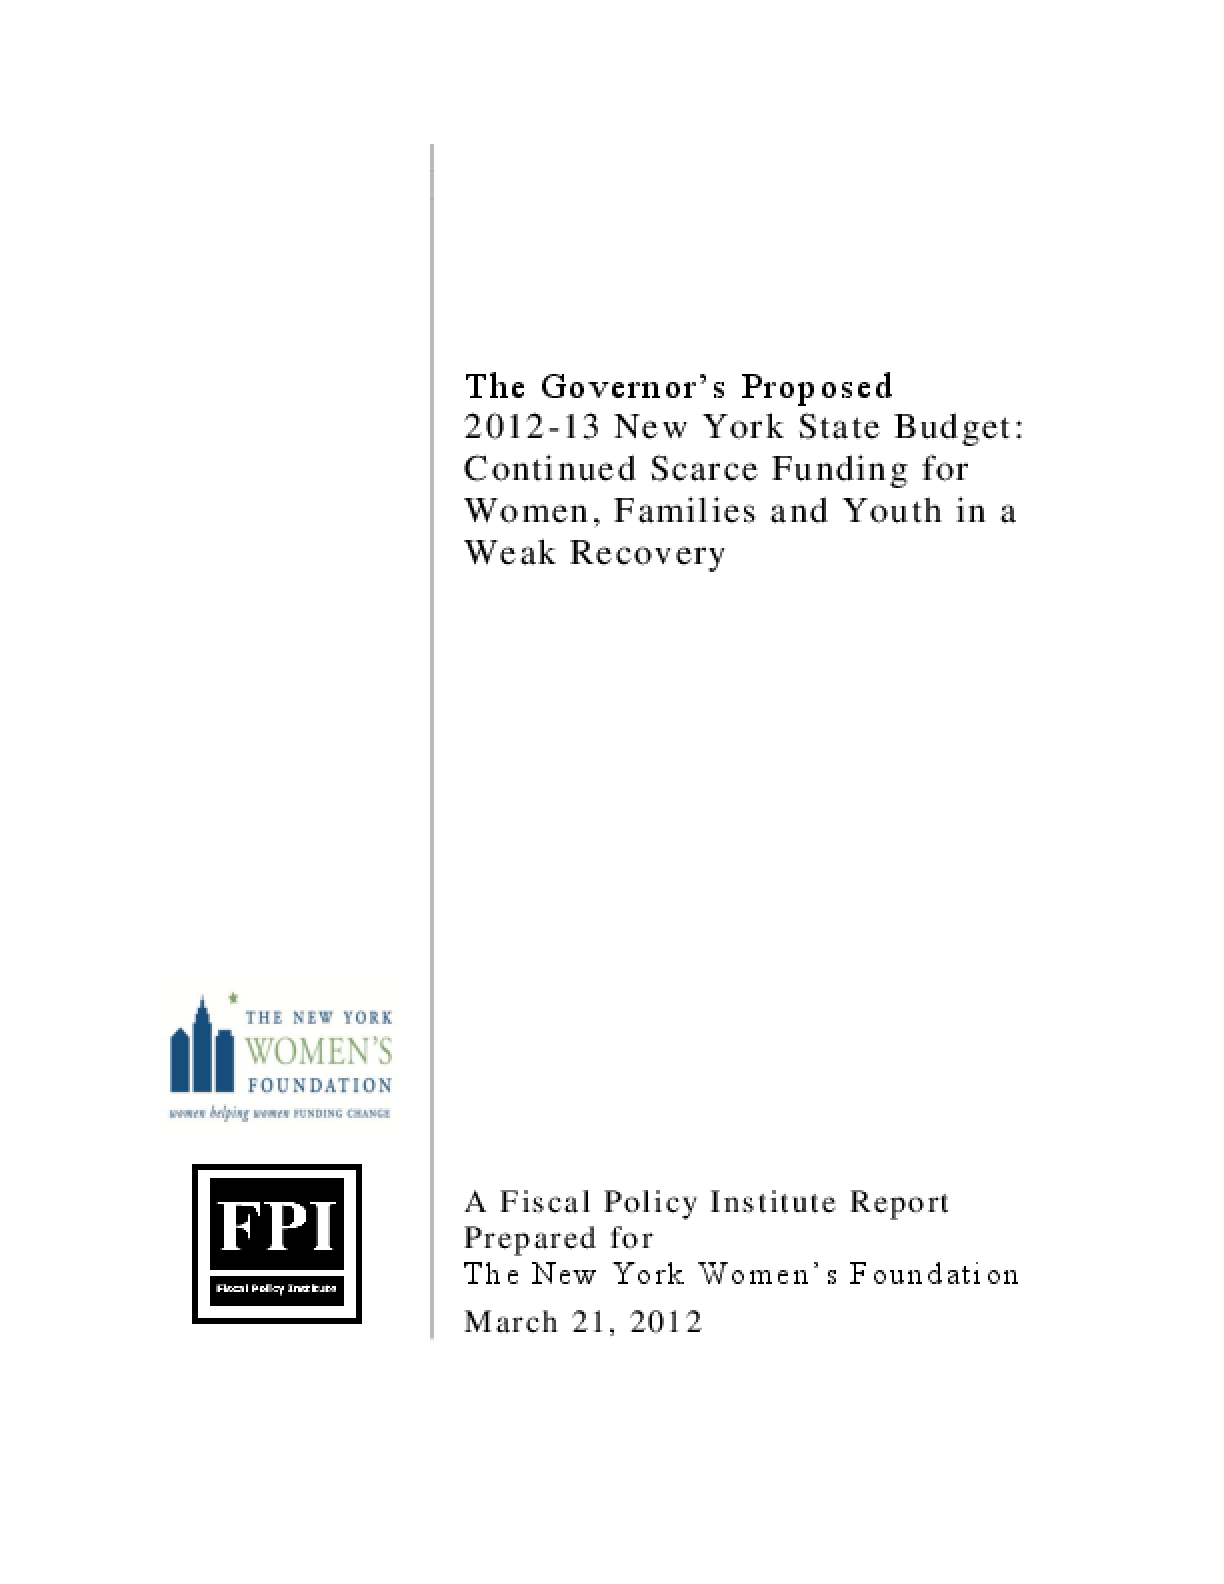 The Governor's Proposed 2012-13 New York State Budget: Continued Scarce Funding for Women, Families and Youth in a Weak Recovery